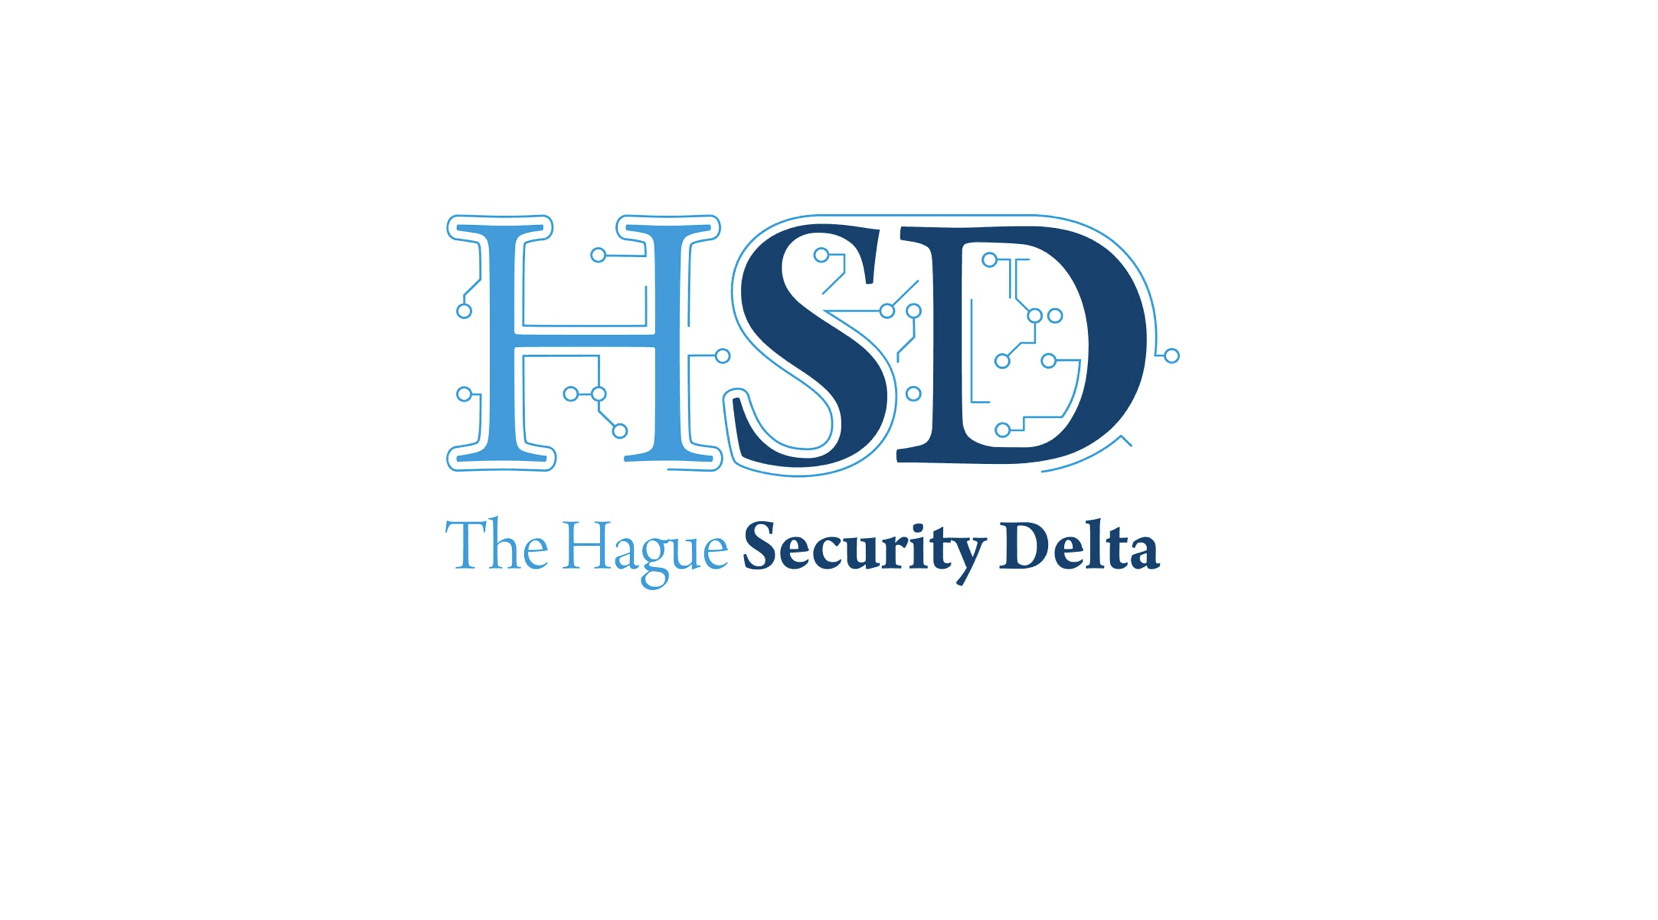 Haagse Security Delta